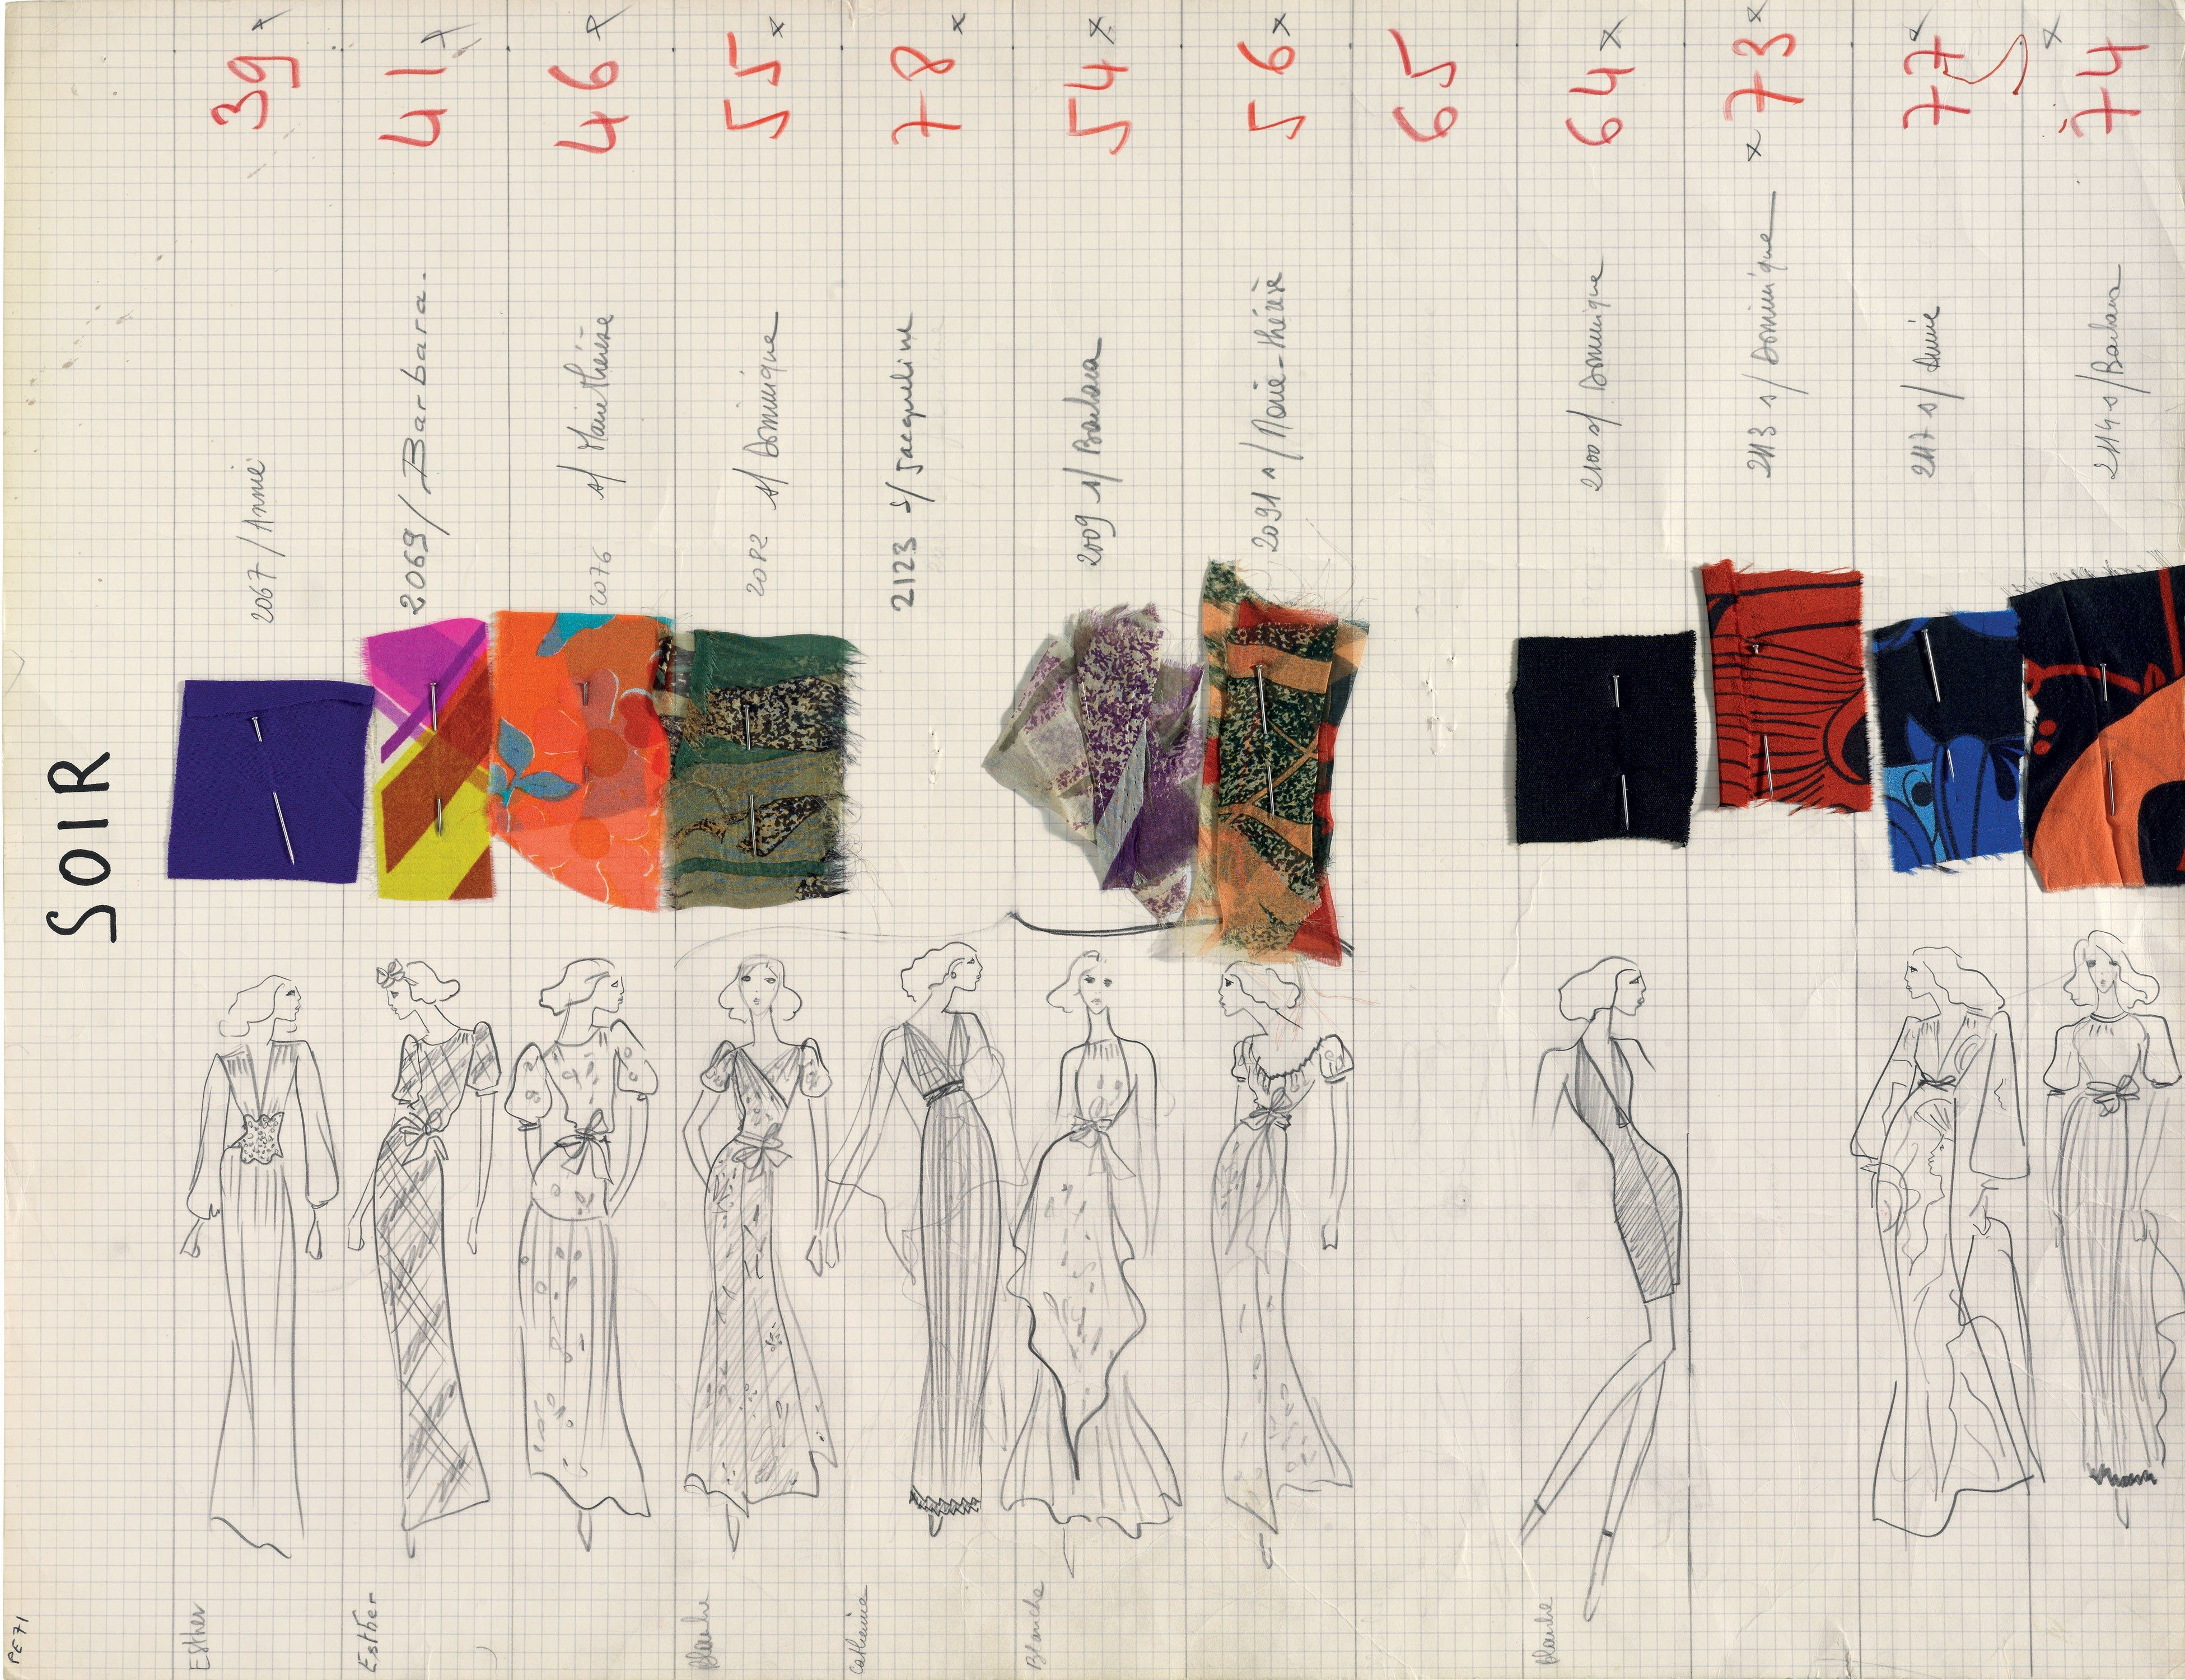 54019710d7c Soir Spring 1971 Haute Couture collection board, Yves Saint Laurent. Mixed  media on thick grid paper pinned with fabric swatches.